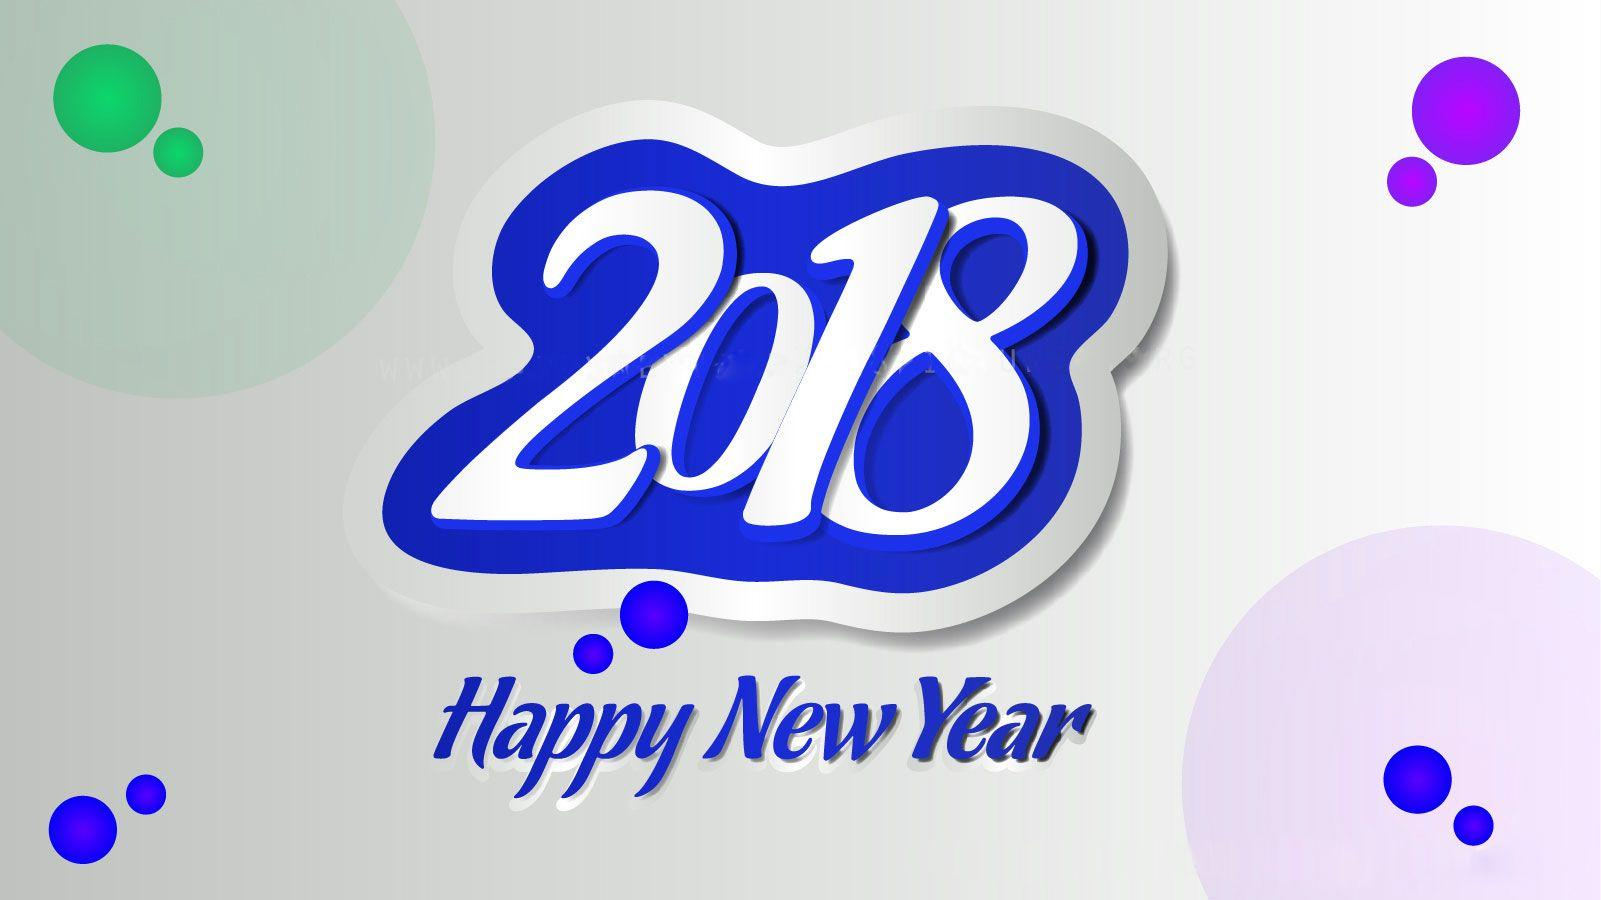 you can get happy new year wallpaper 2018 happy new year hd wallpaper 2018 happy new